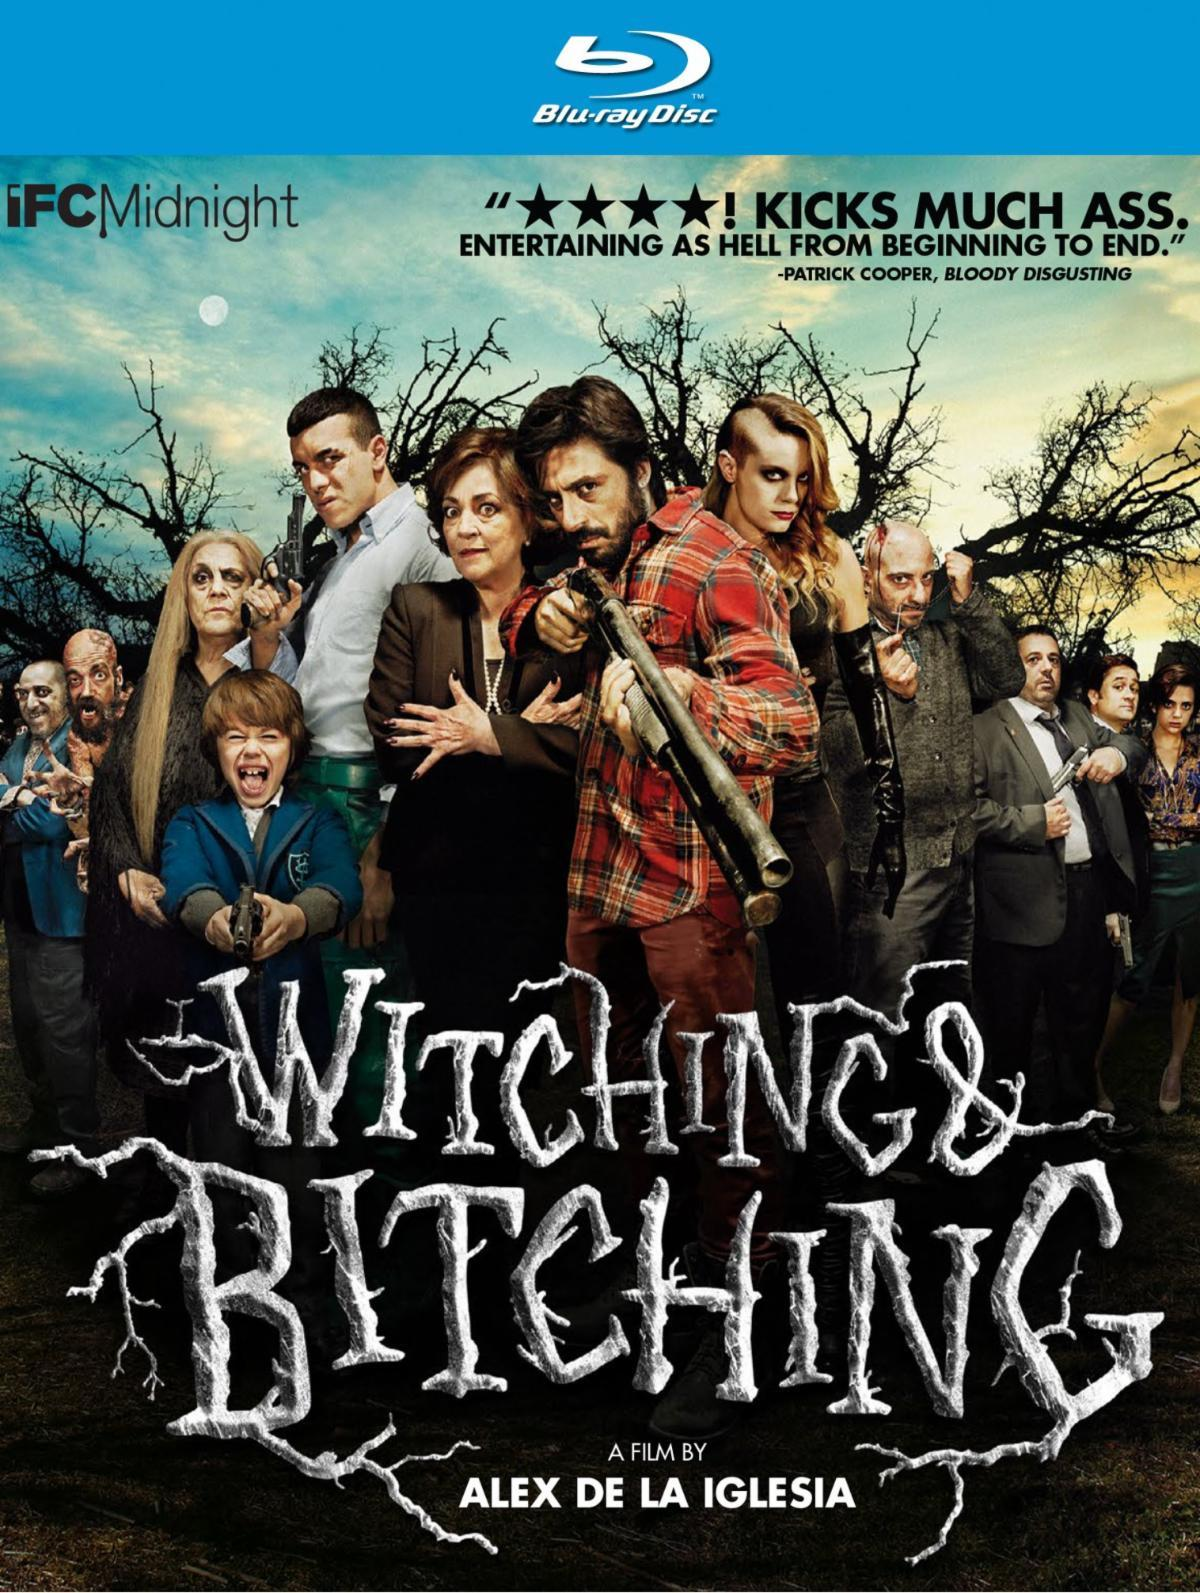 Cover art from the Blu-ray of Witching and Bitching